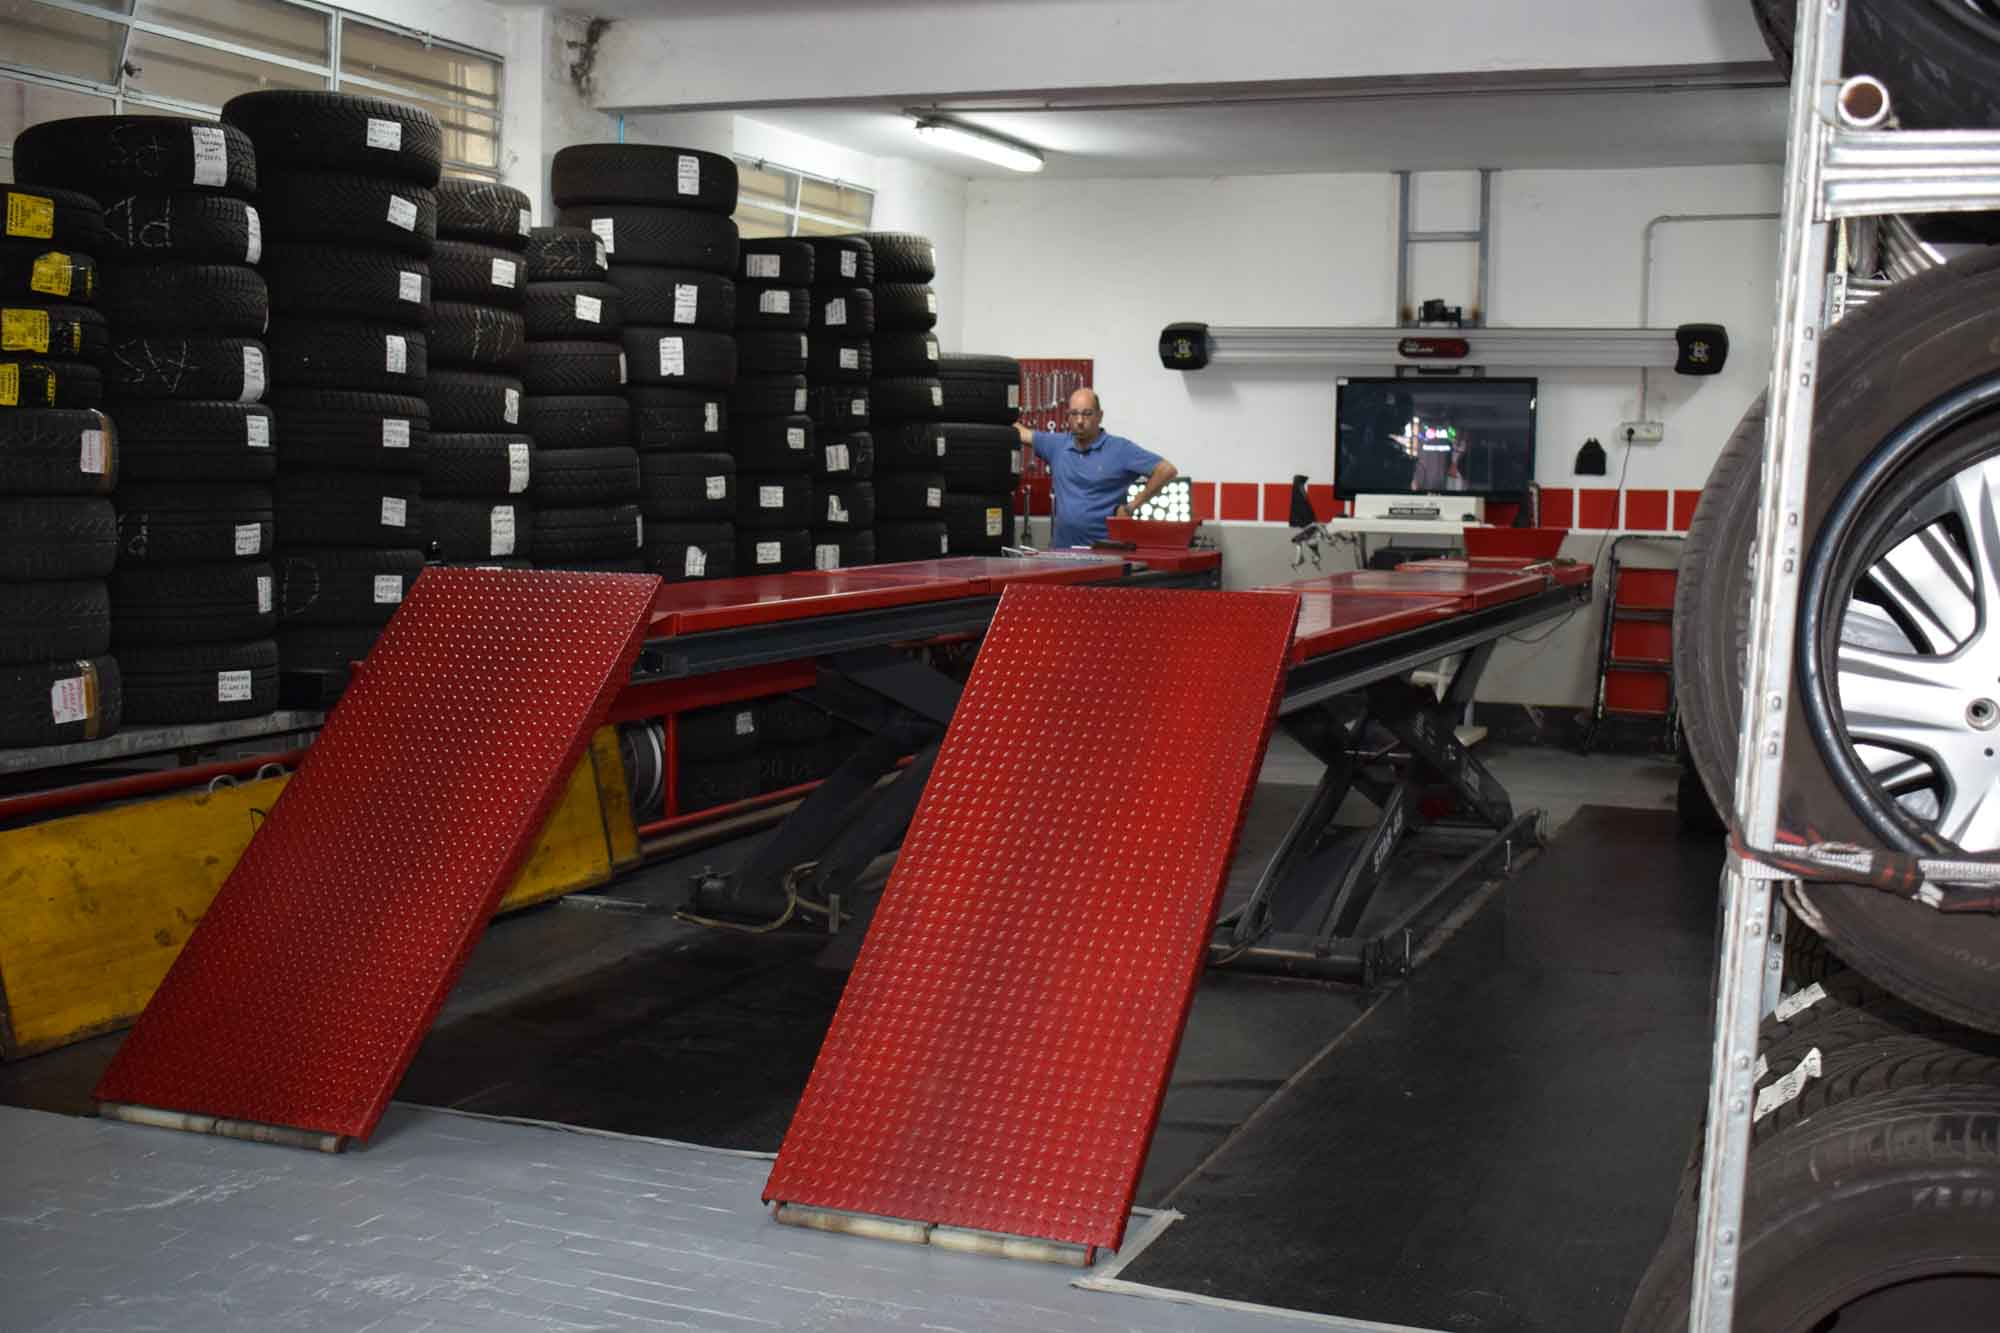 giesse-gomme-officina-pneumatici-6